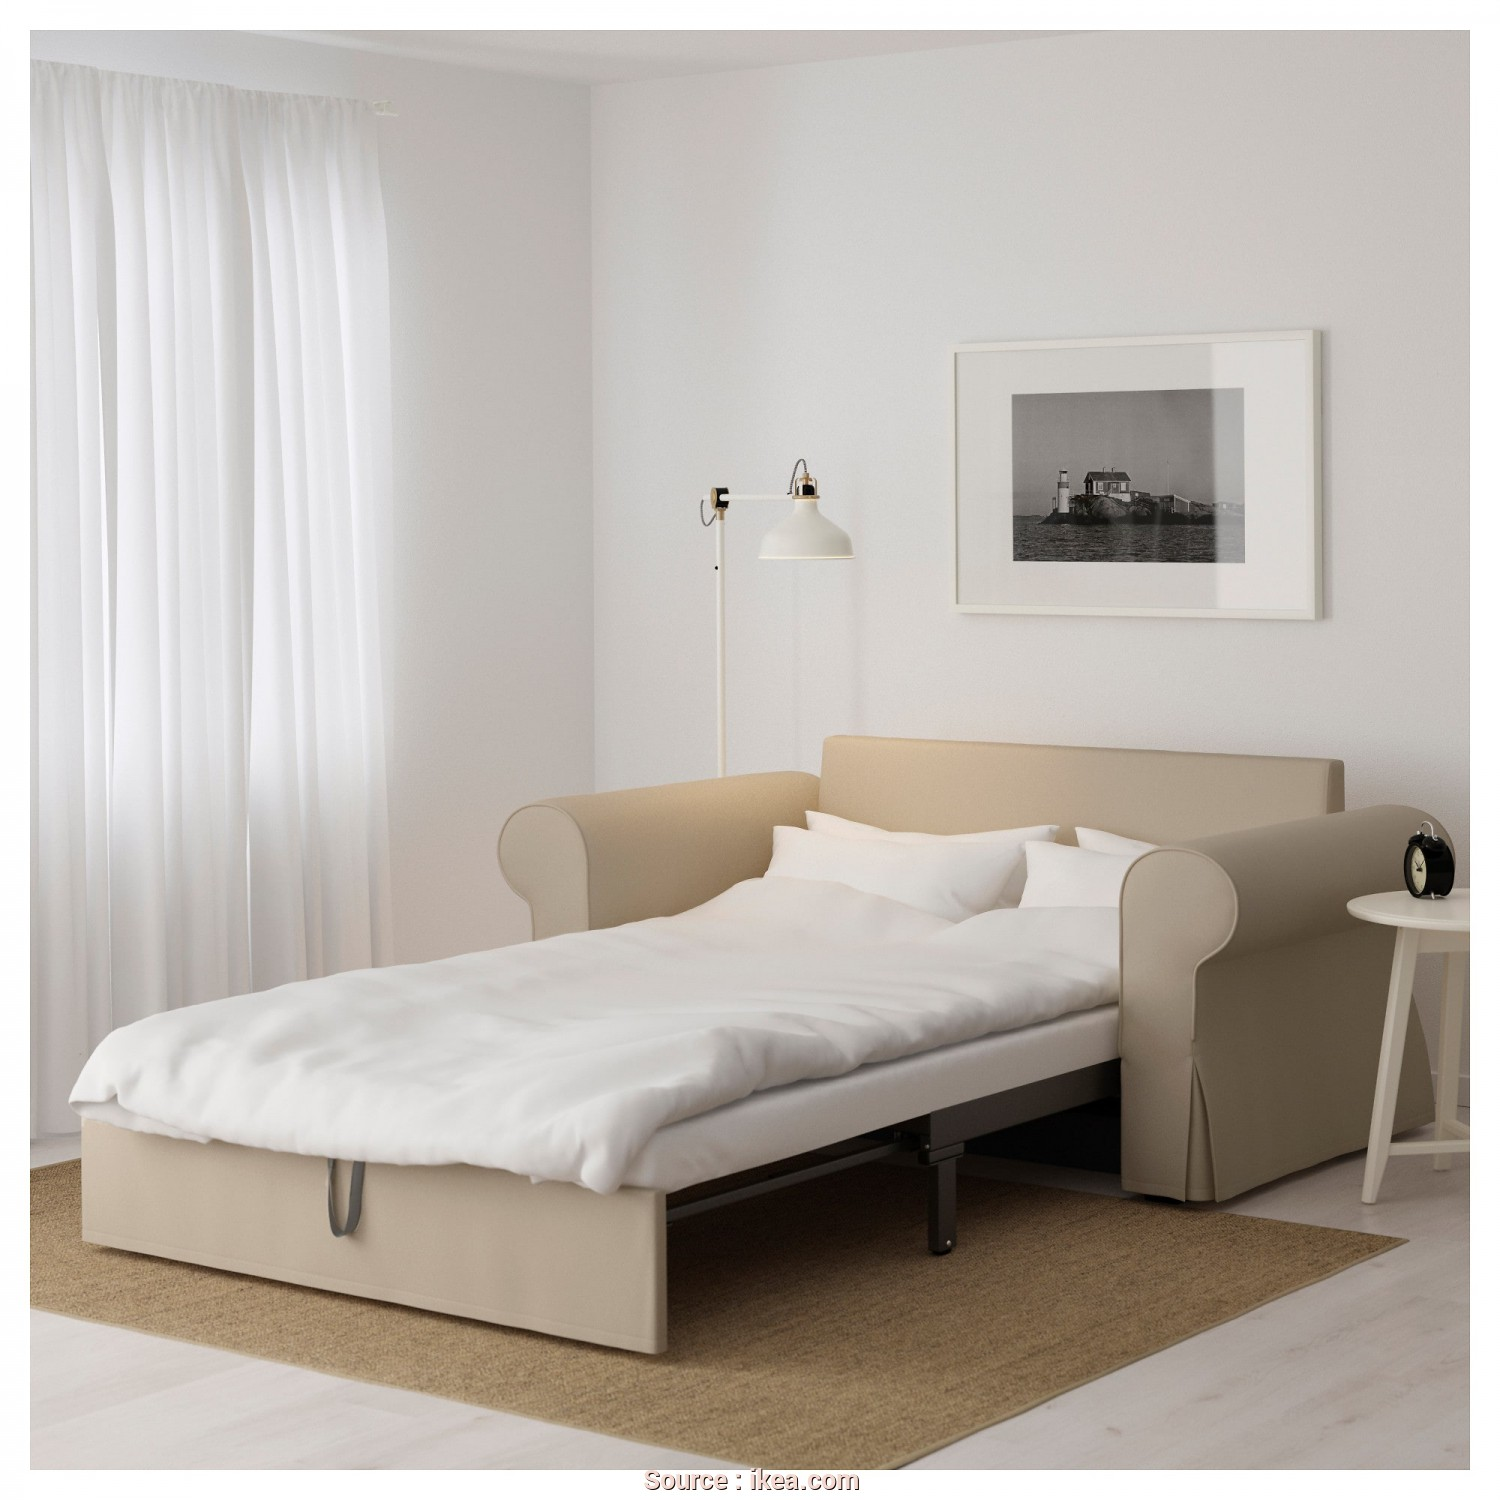 Ikea Backabro 2 Seater Sofa Bed, Bellissimo BACKABRO Two-Seat Sofa-Bed Ramna Beige